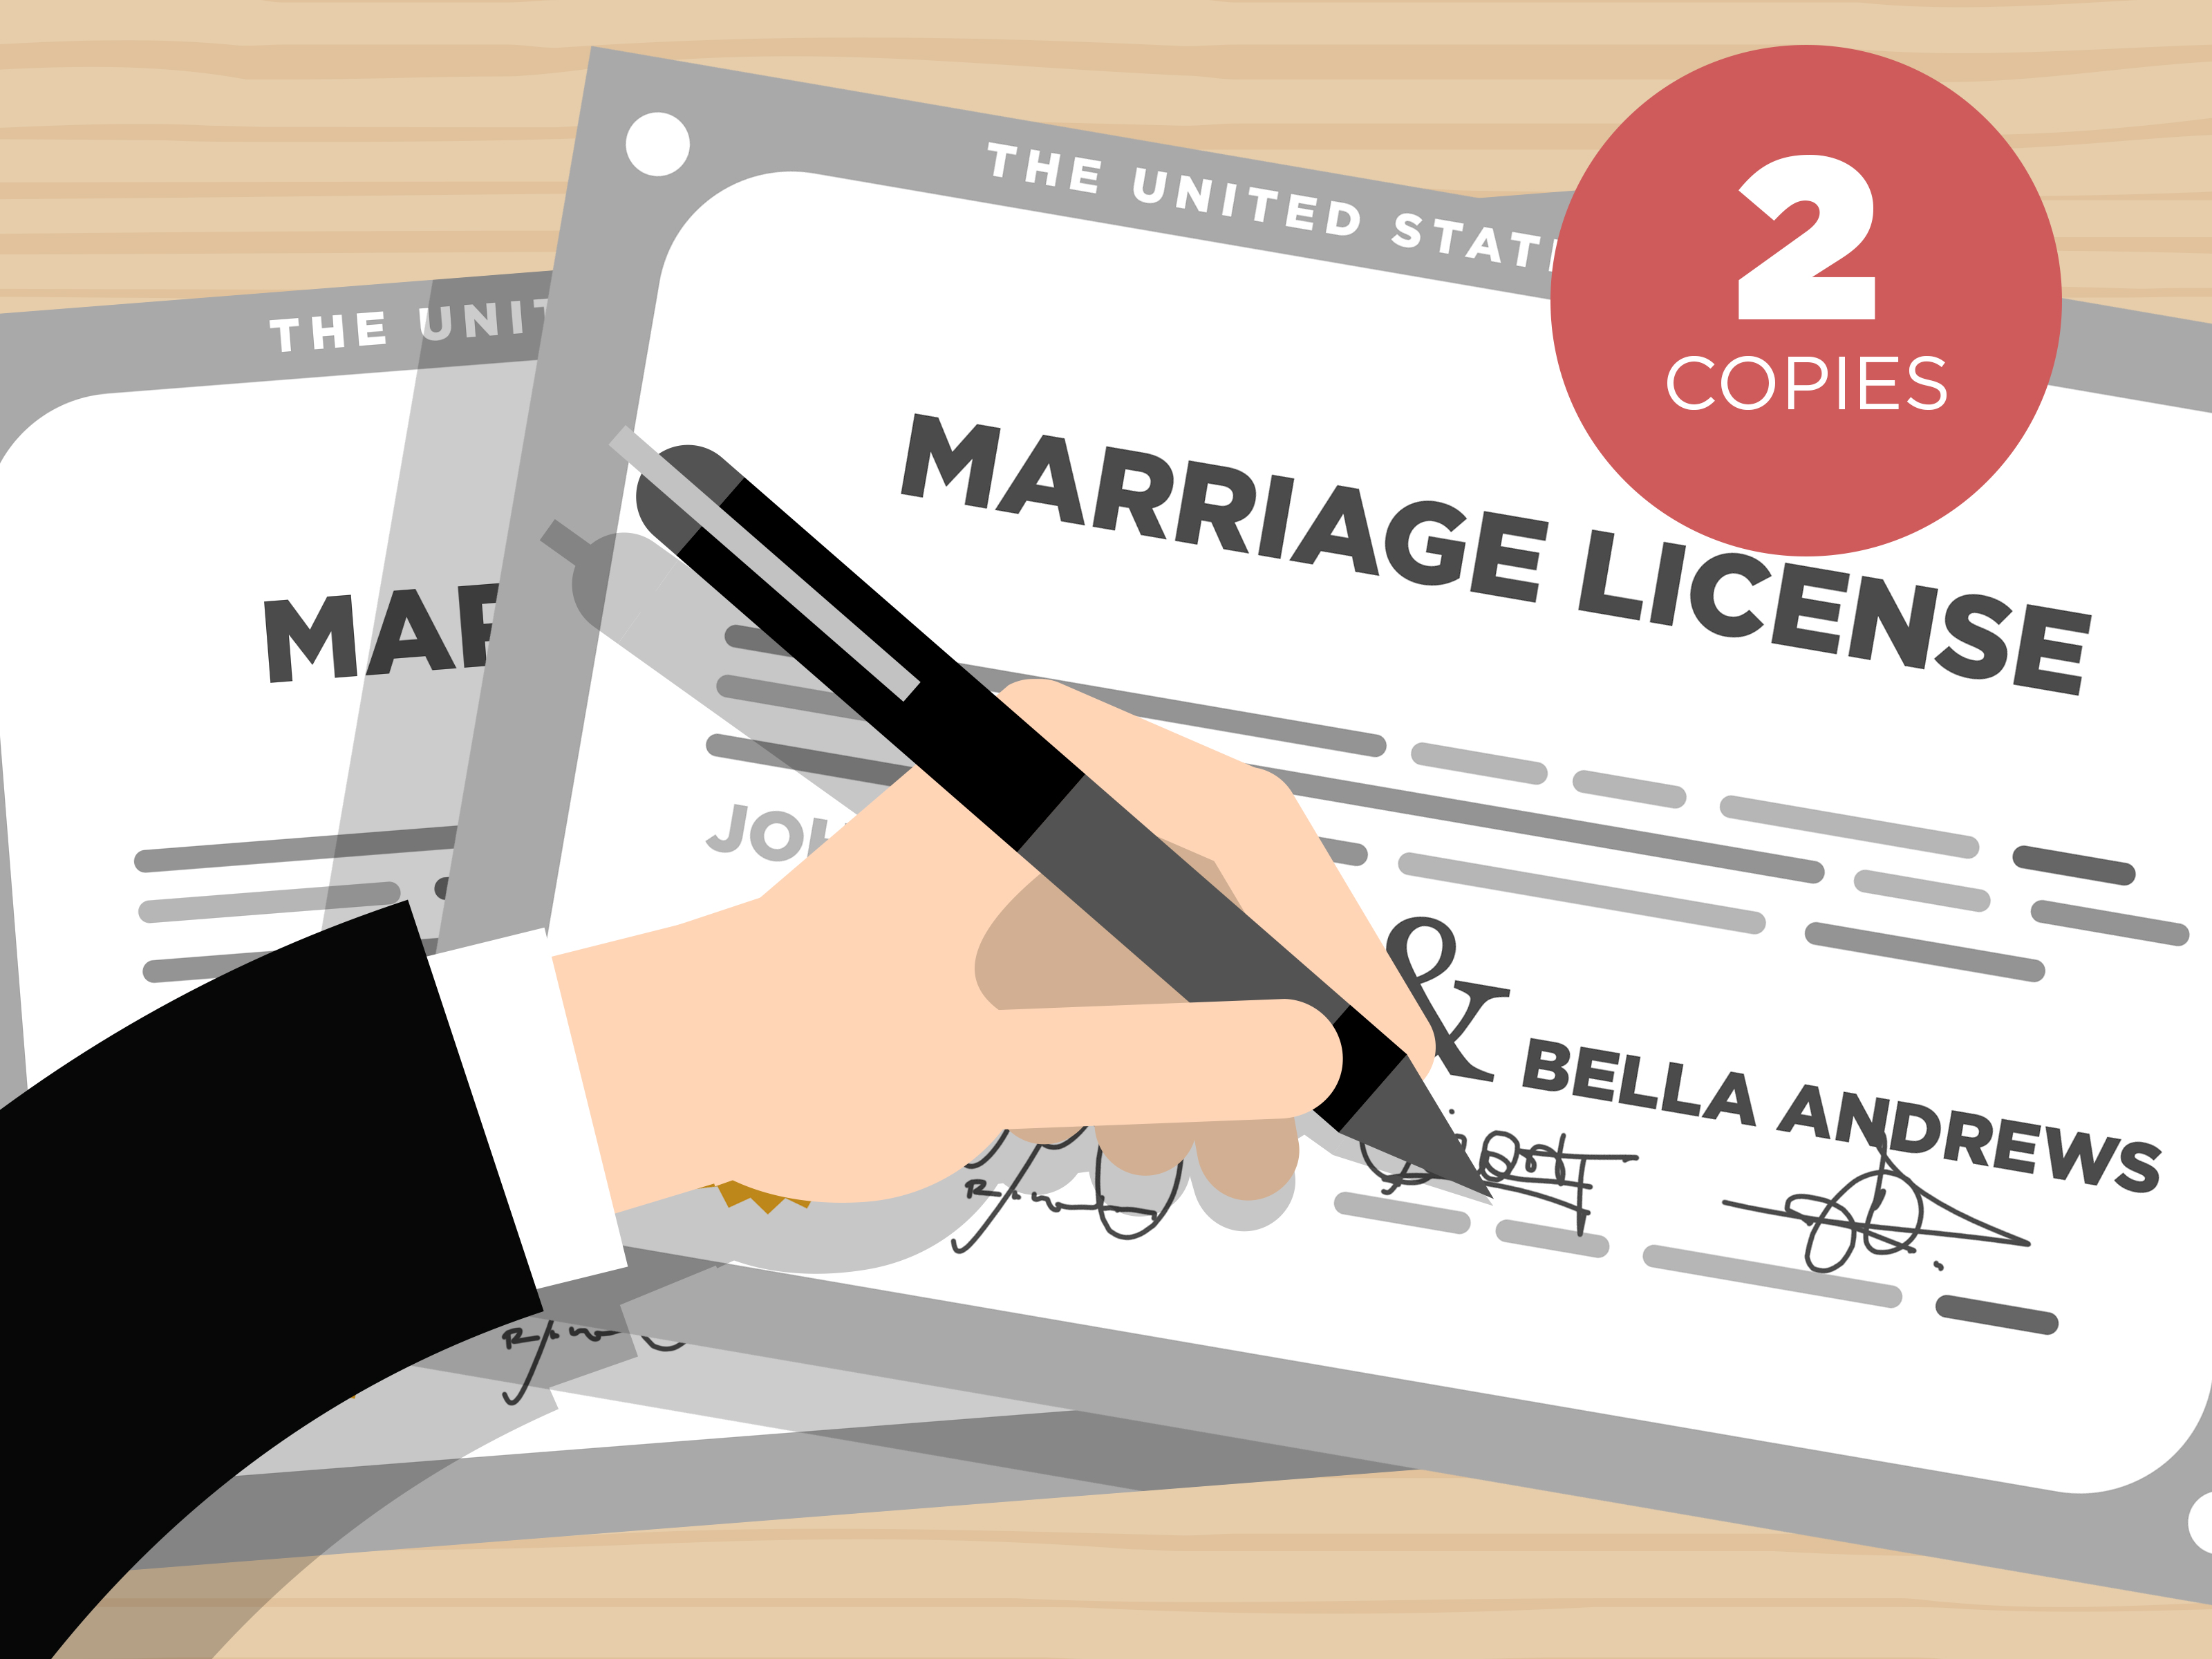 application for marrige certificate montreal quebec